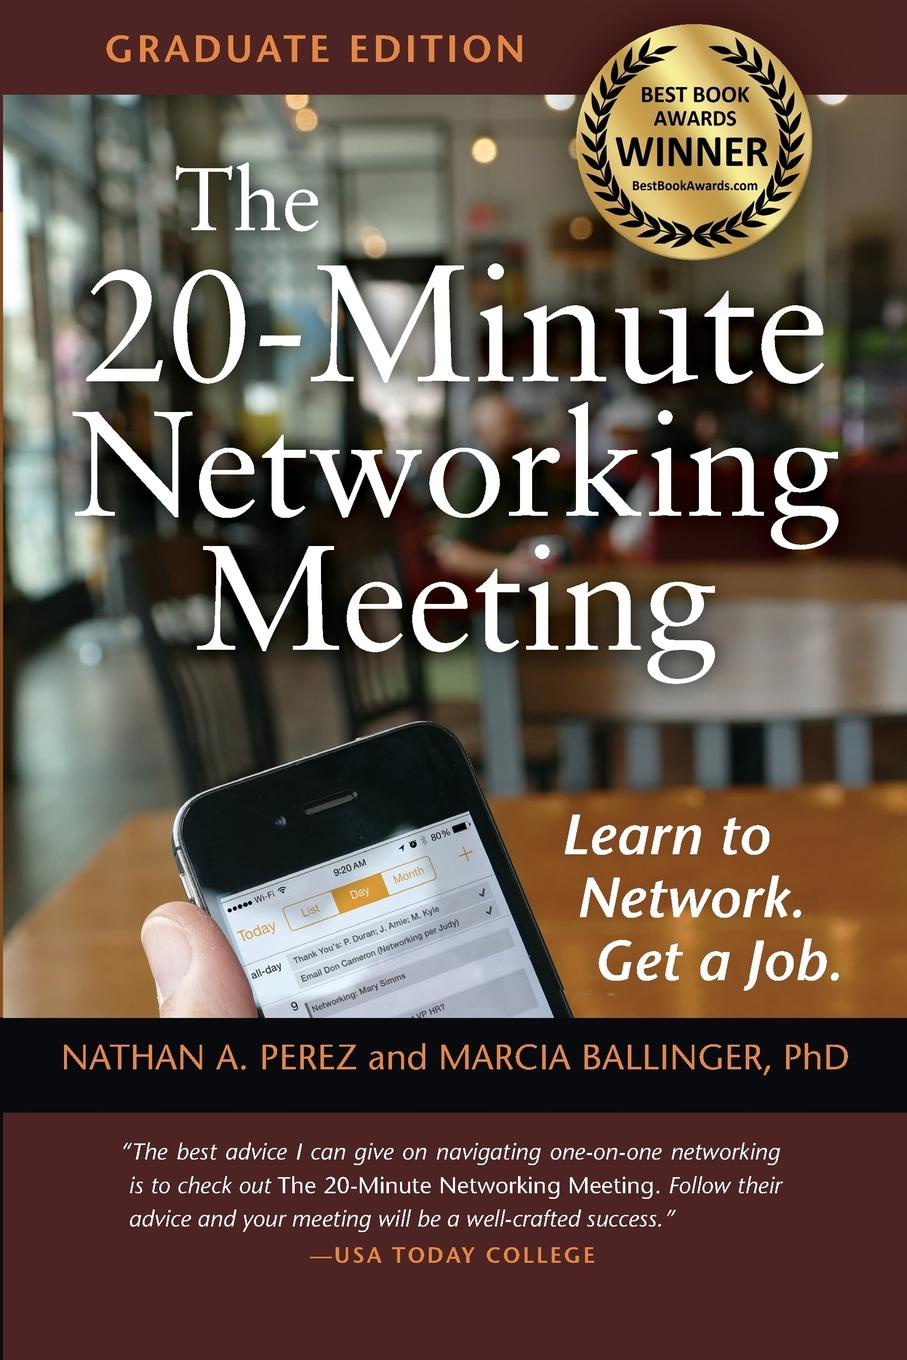 Nathan A. Perez, Marcia Ballinger PhD The 20-Minute Networking Meeting - Graduate Edition. Learn to Network. Get a Job. multimedia networking